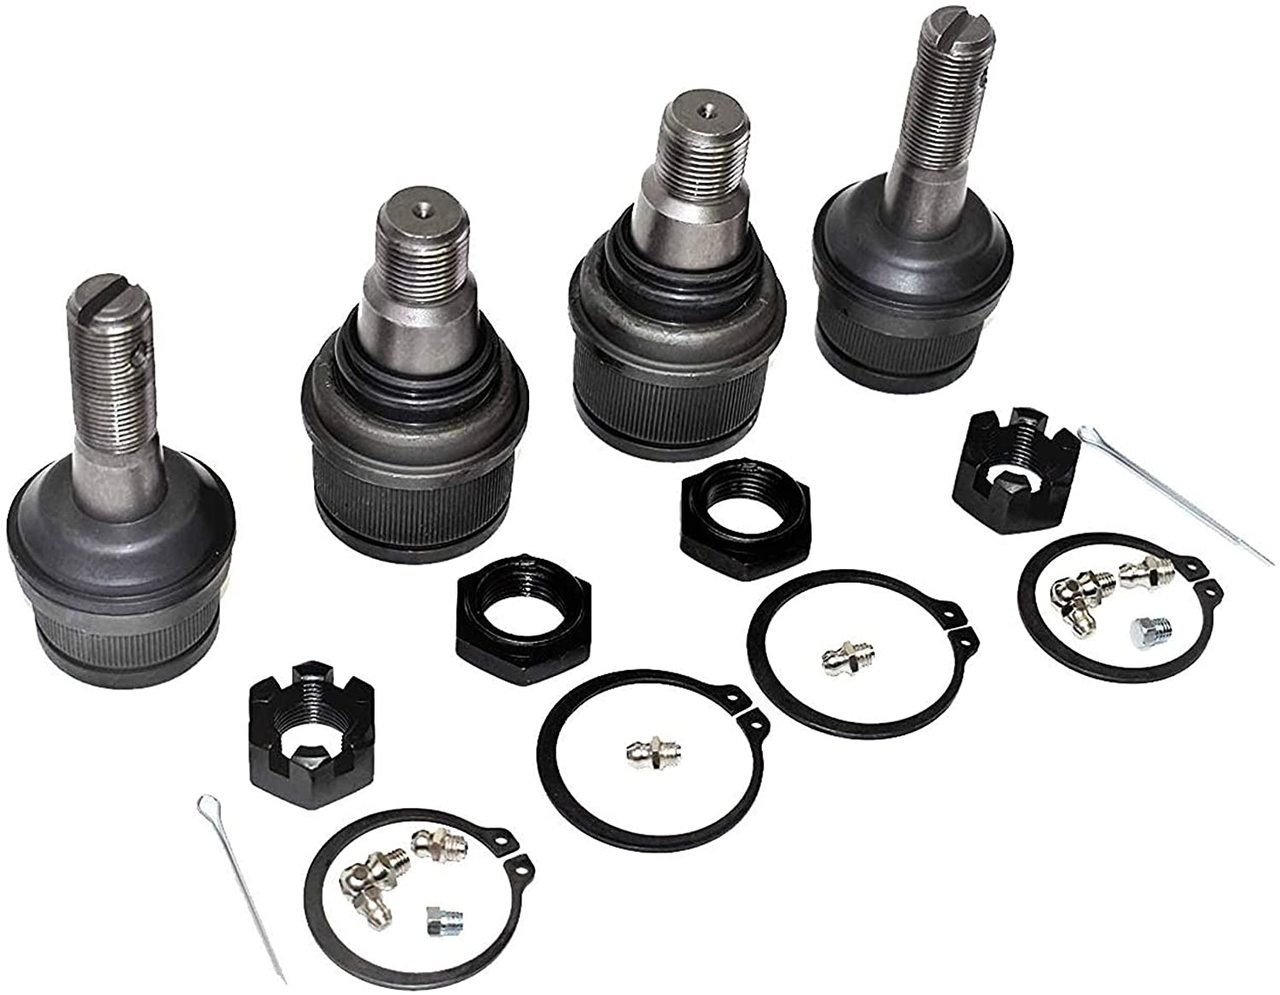 A-Team Performance CHASSIS KIT FORD F250 F350 Super Duty UPPER & LOWER BALL JOINT SET 99-06